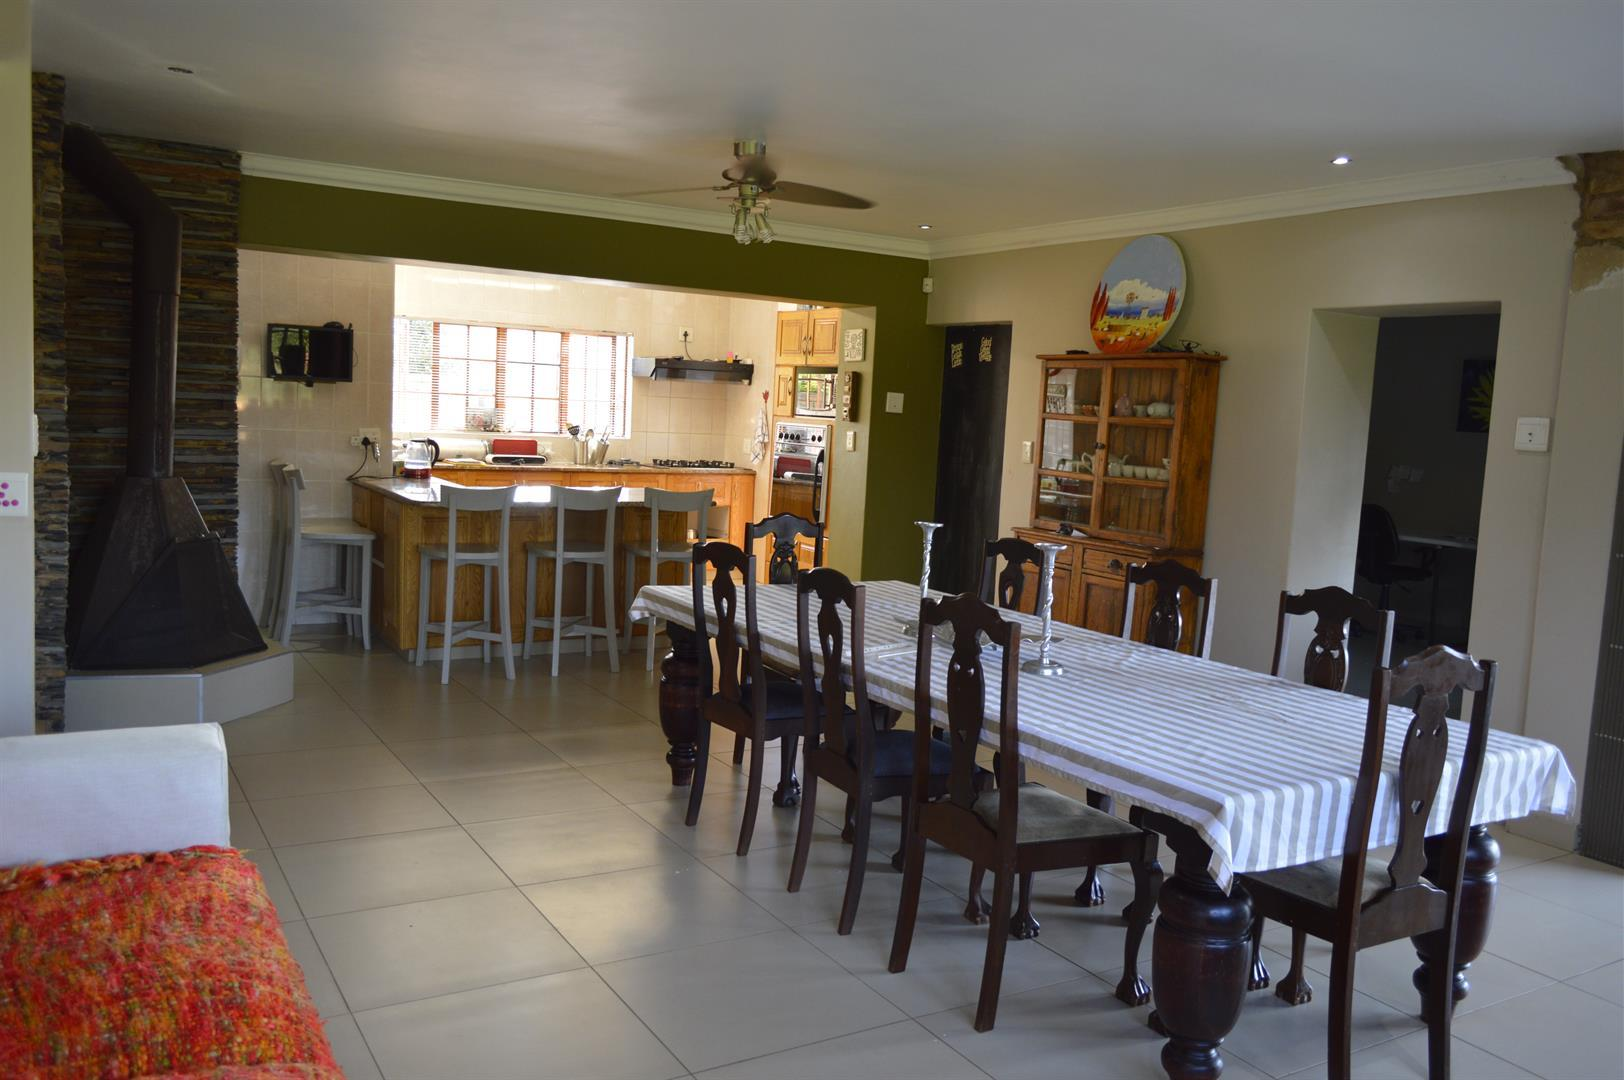 Raslouw A H property for sale. Ref No: 13442161. Picture no 4